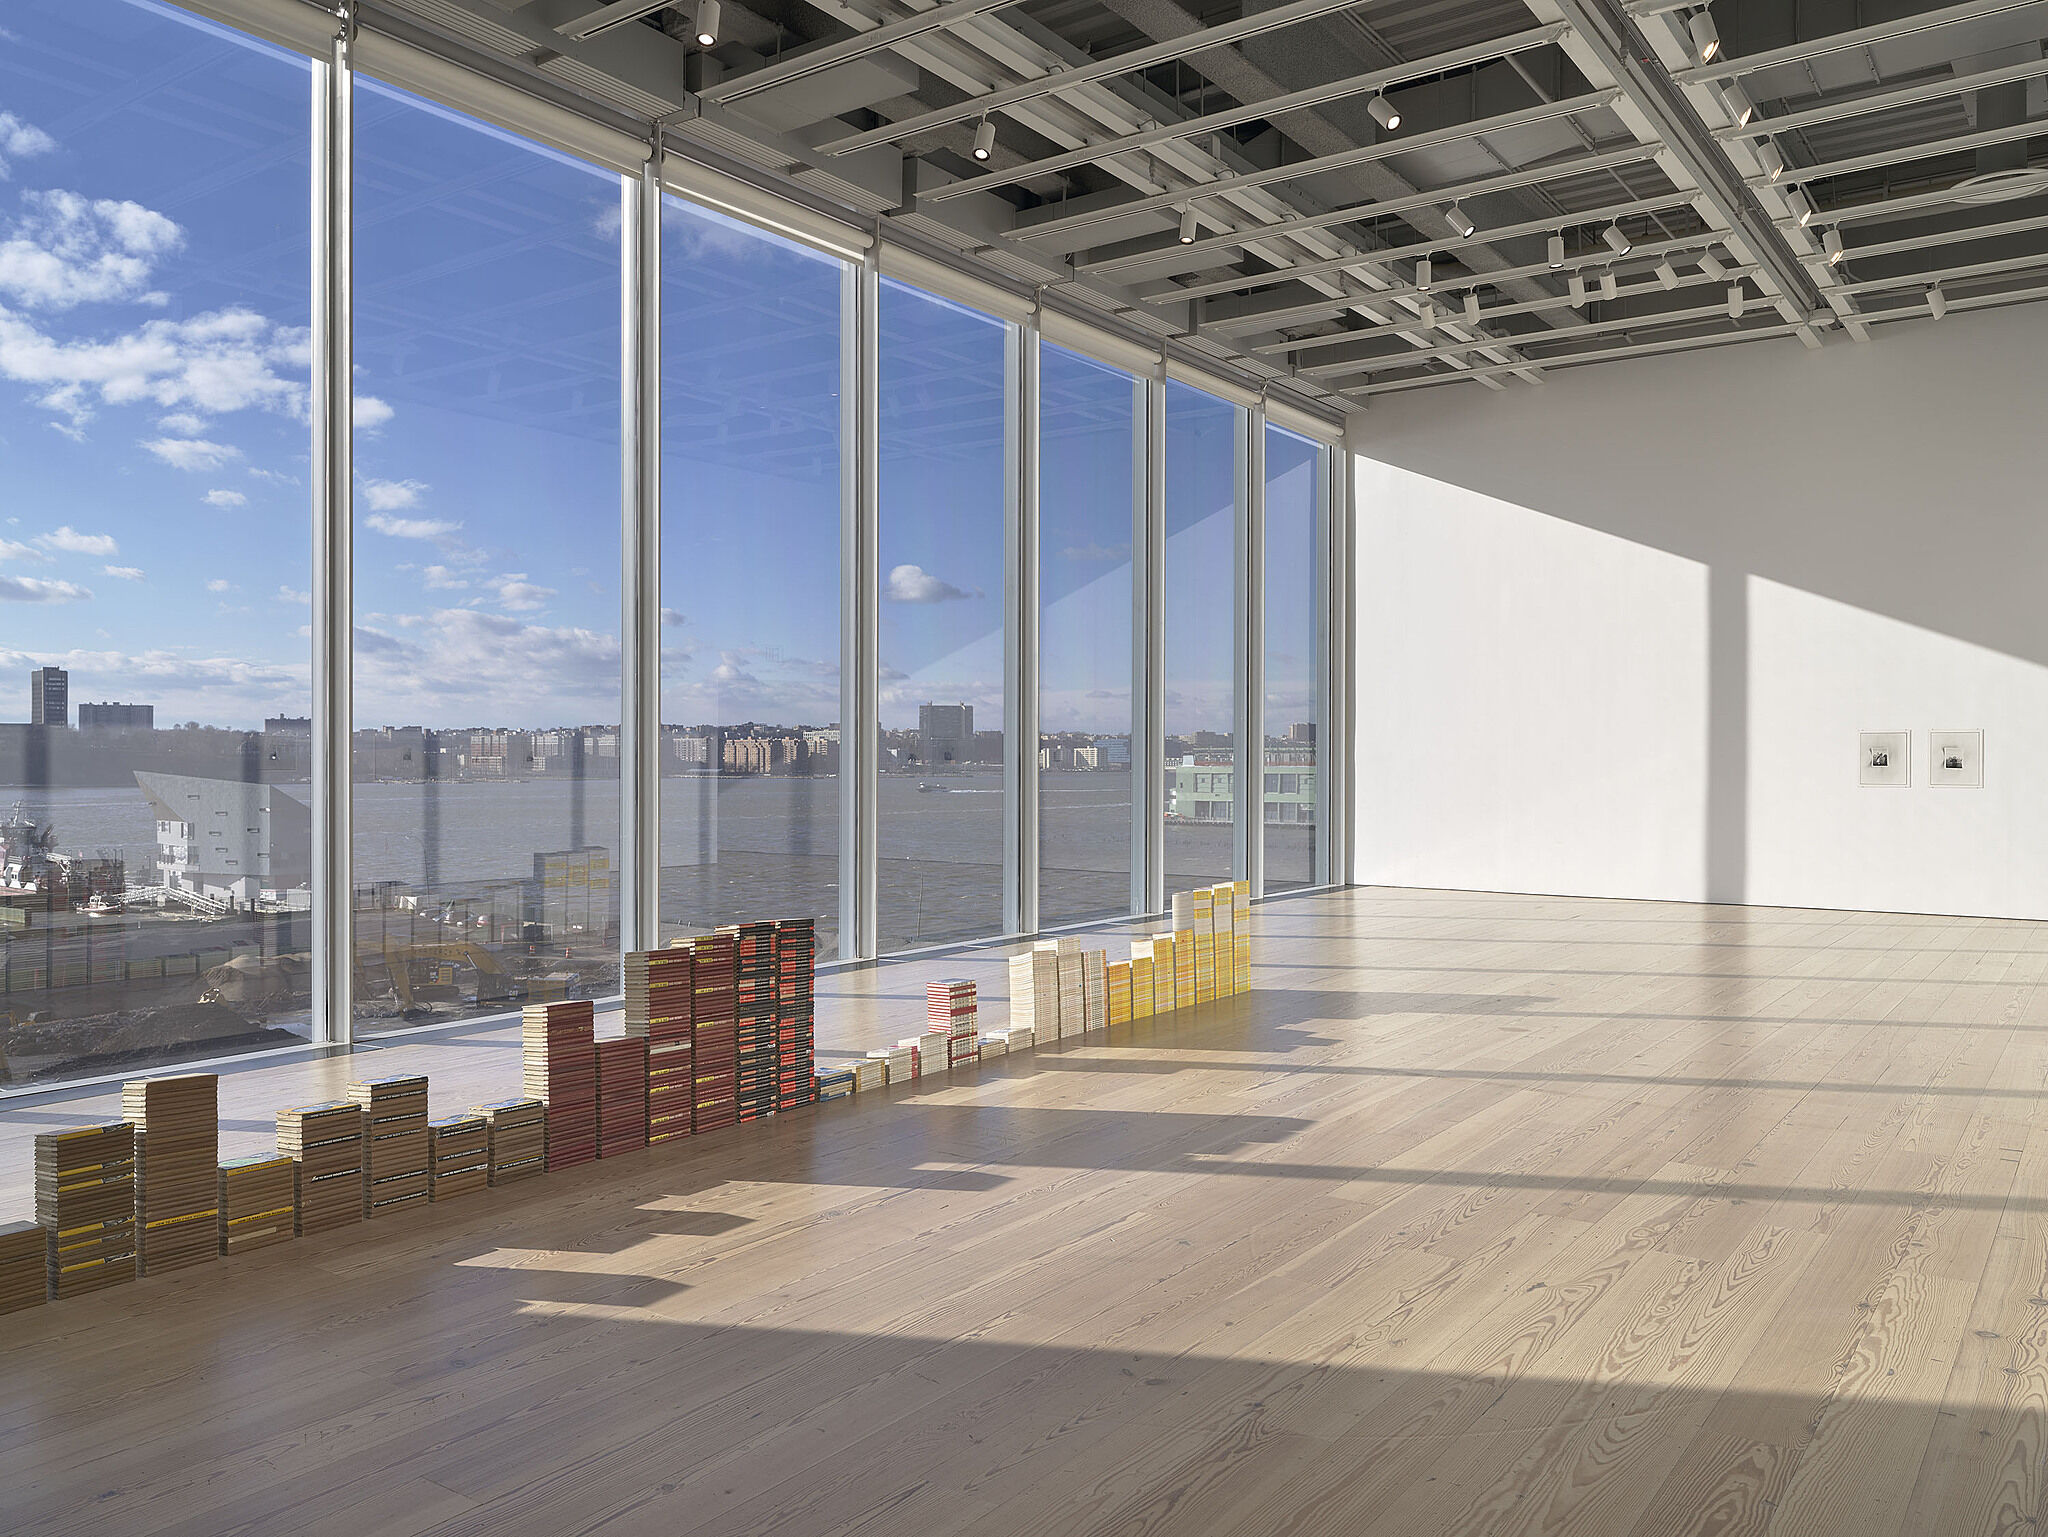 A photo of the Whitney galleries with stacks of books.